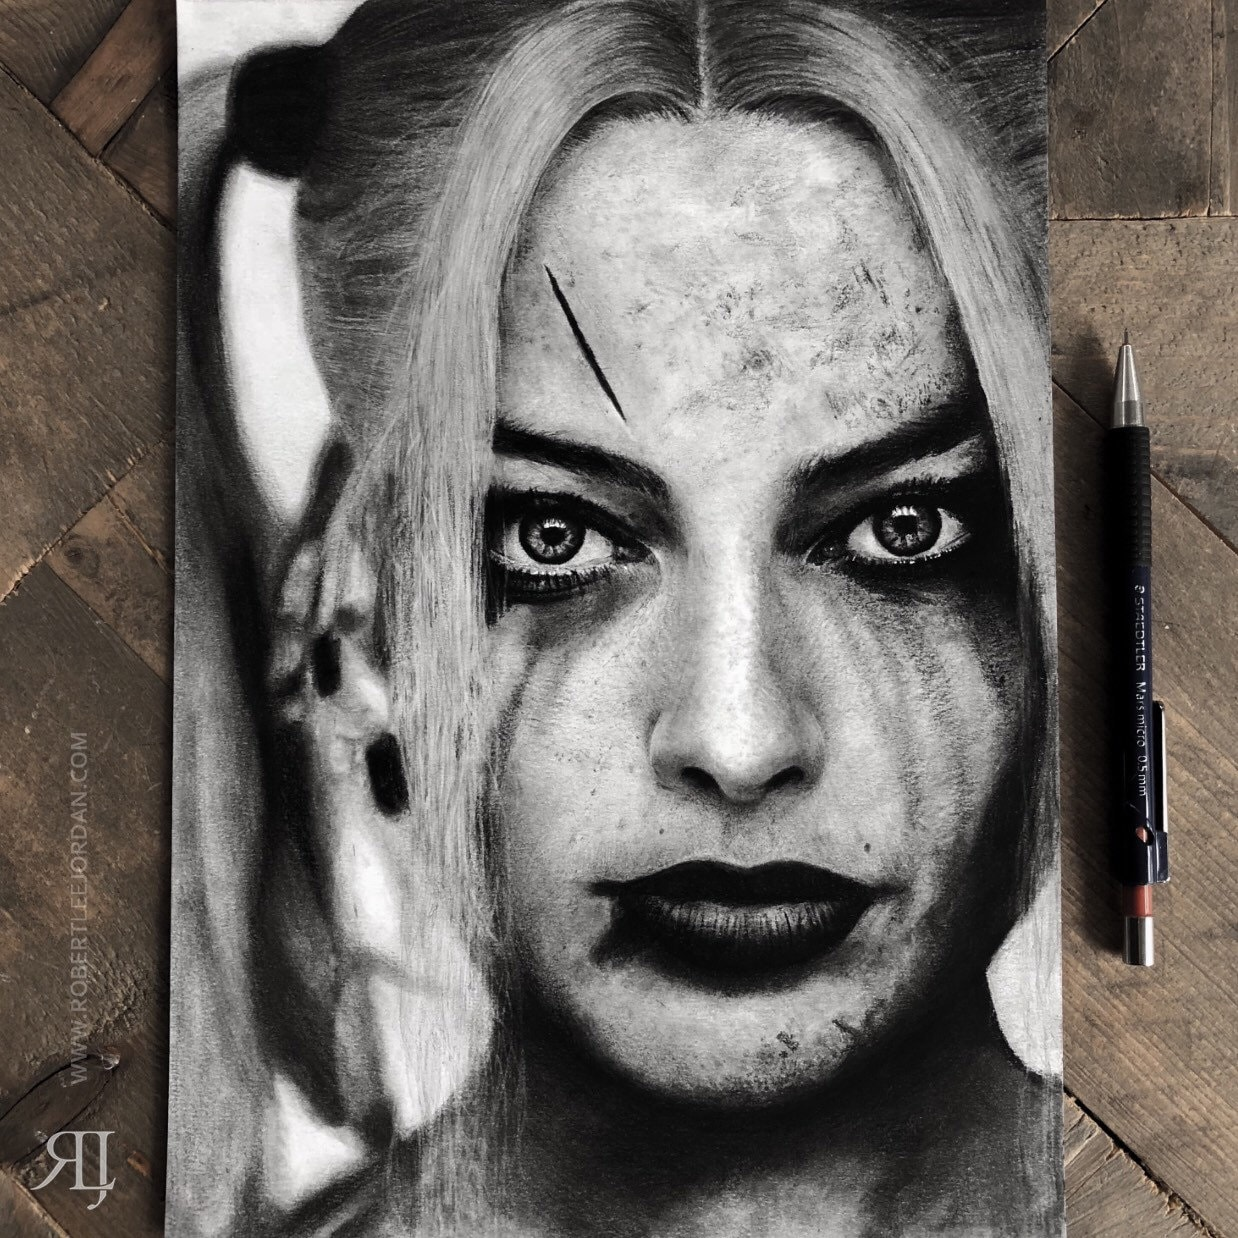 Harley quinn original pencil drawing margot robbie original